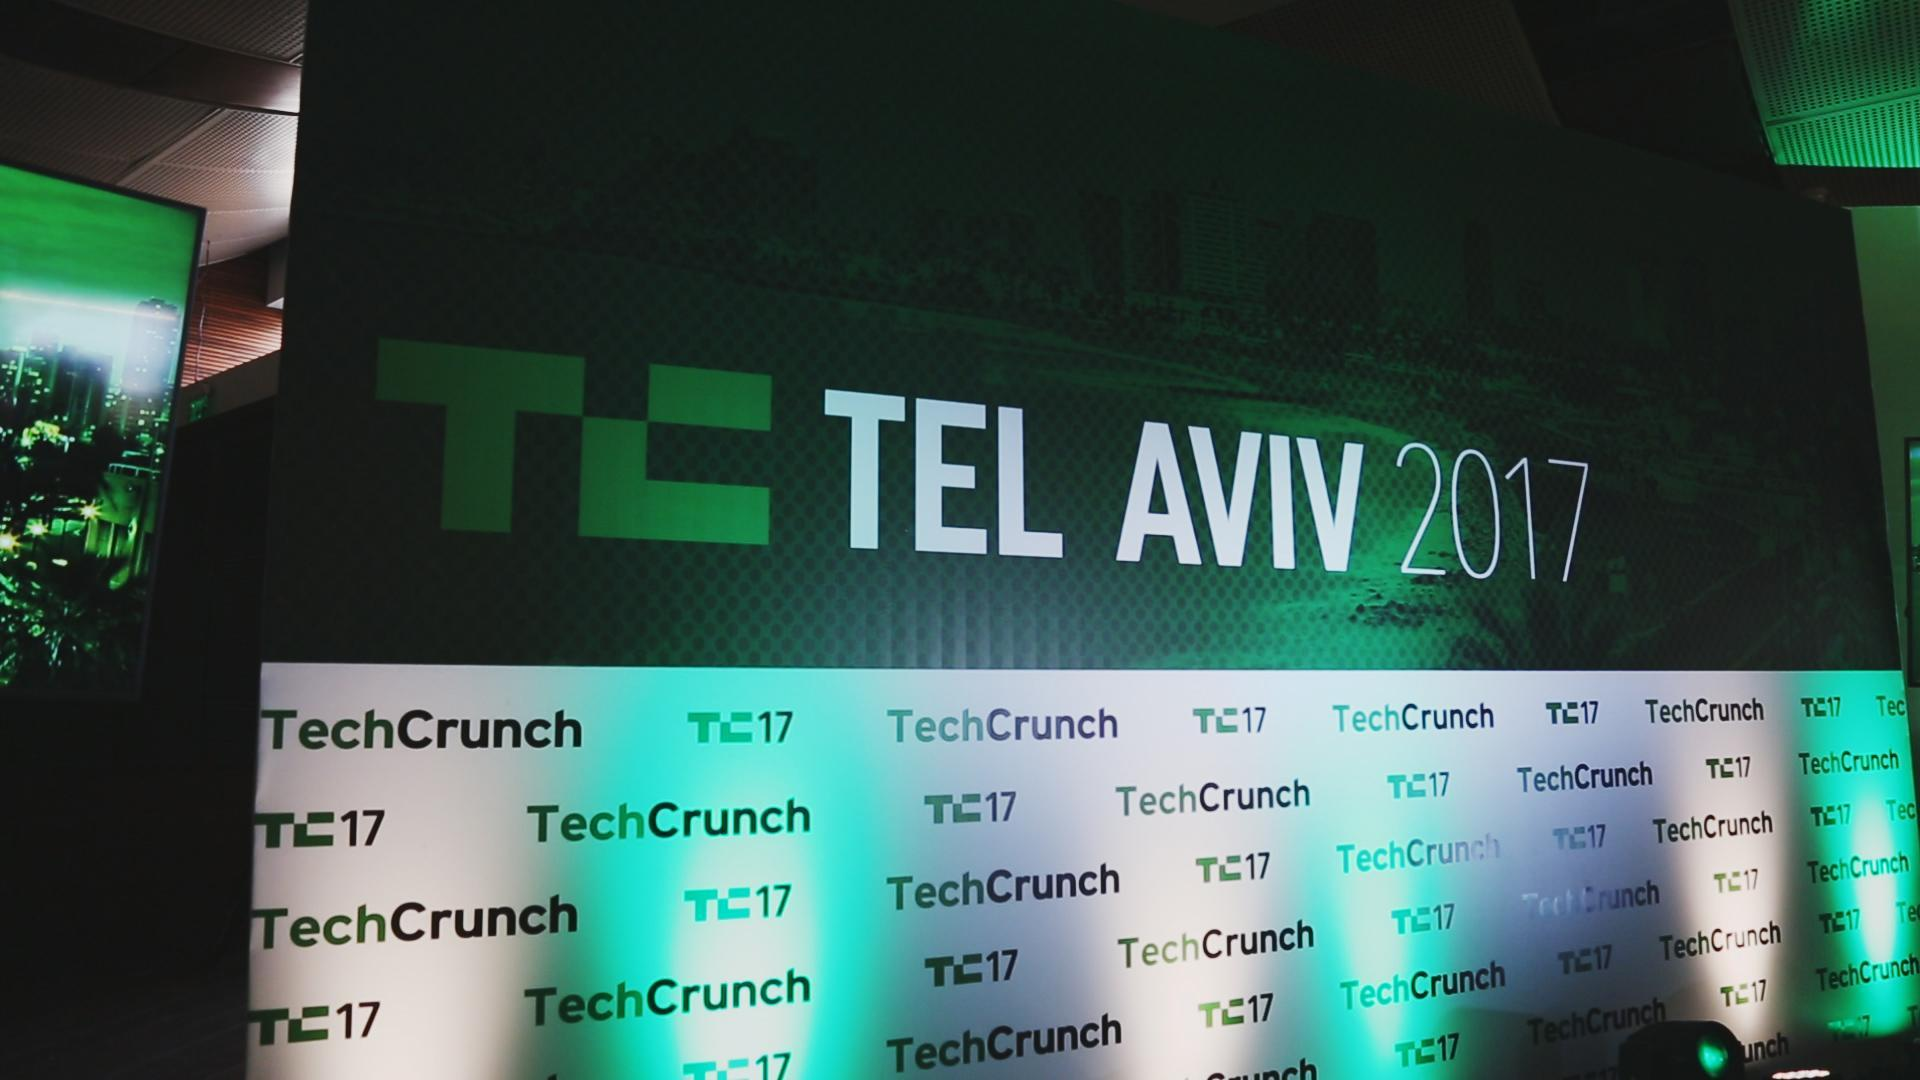 TechCrunch Pitch-Off rocked Tel Aviv